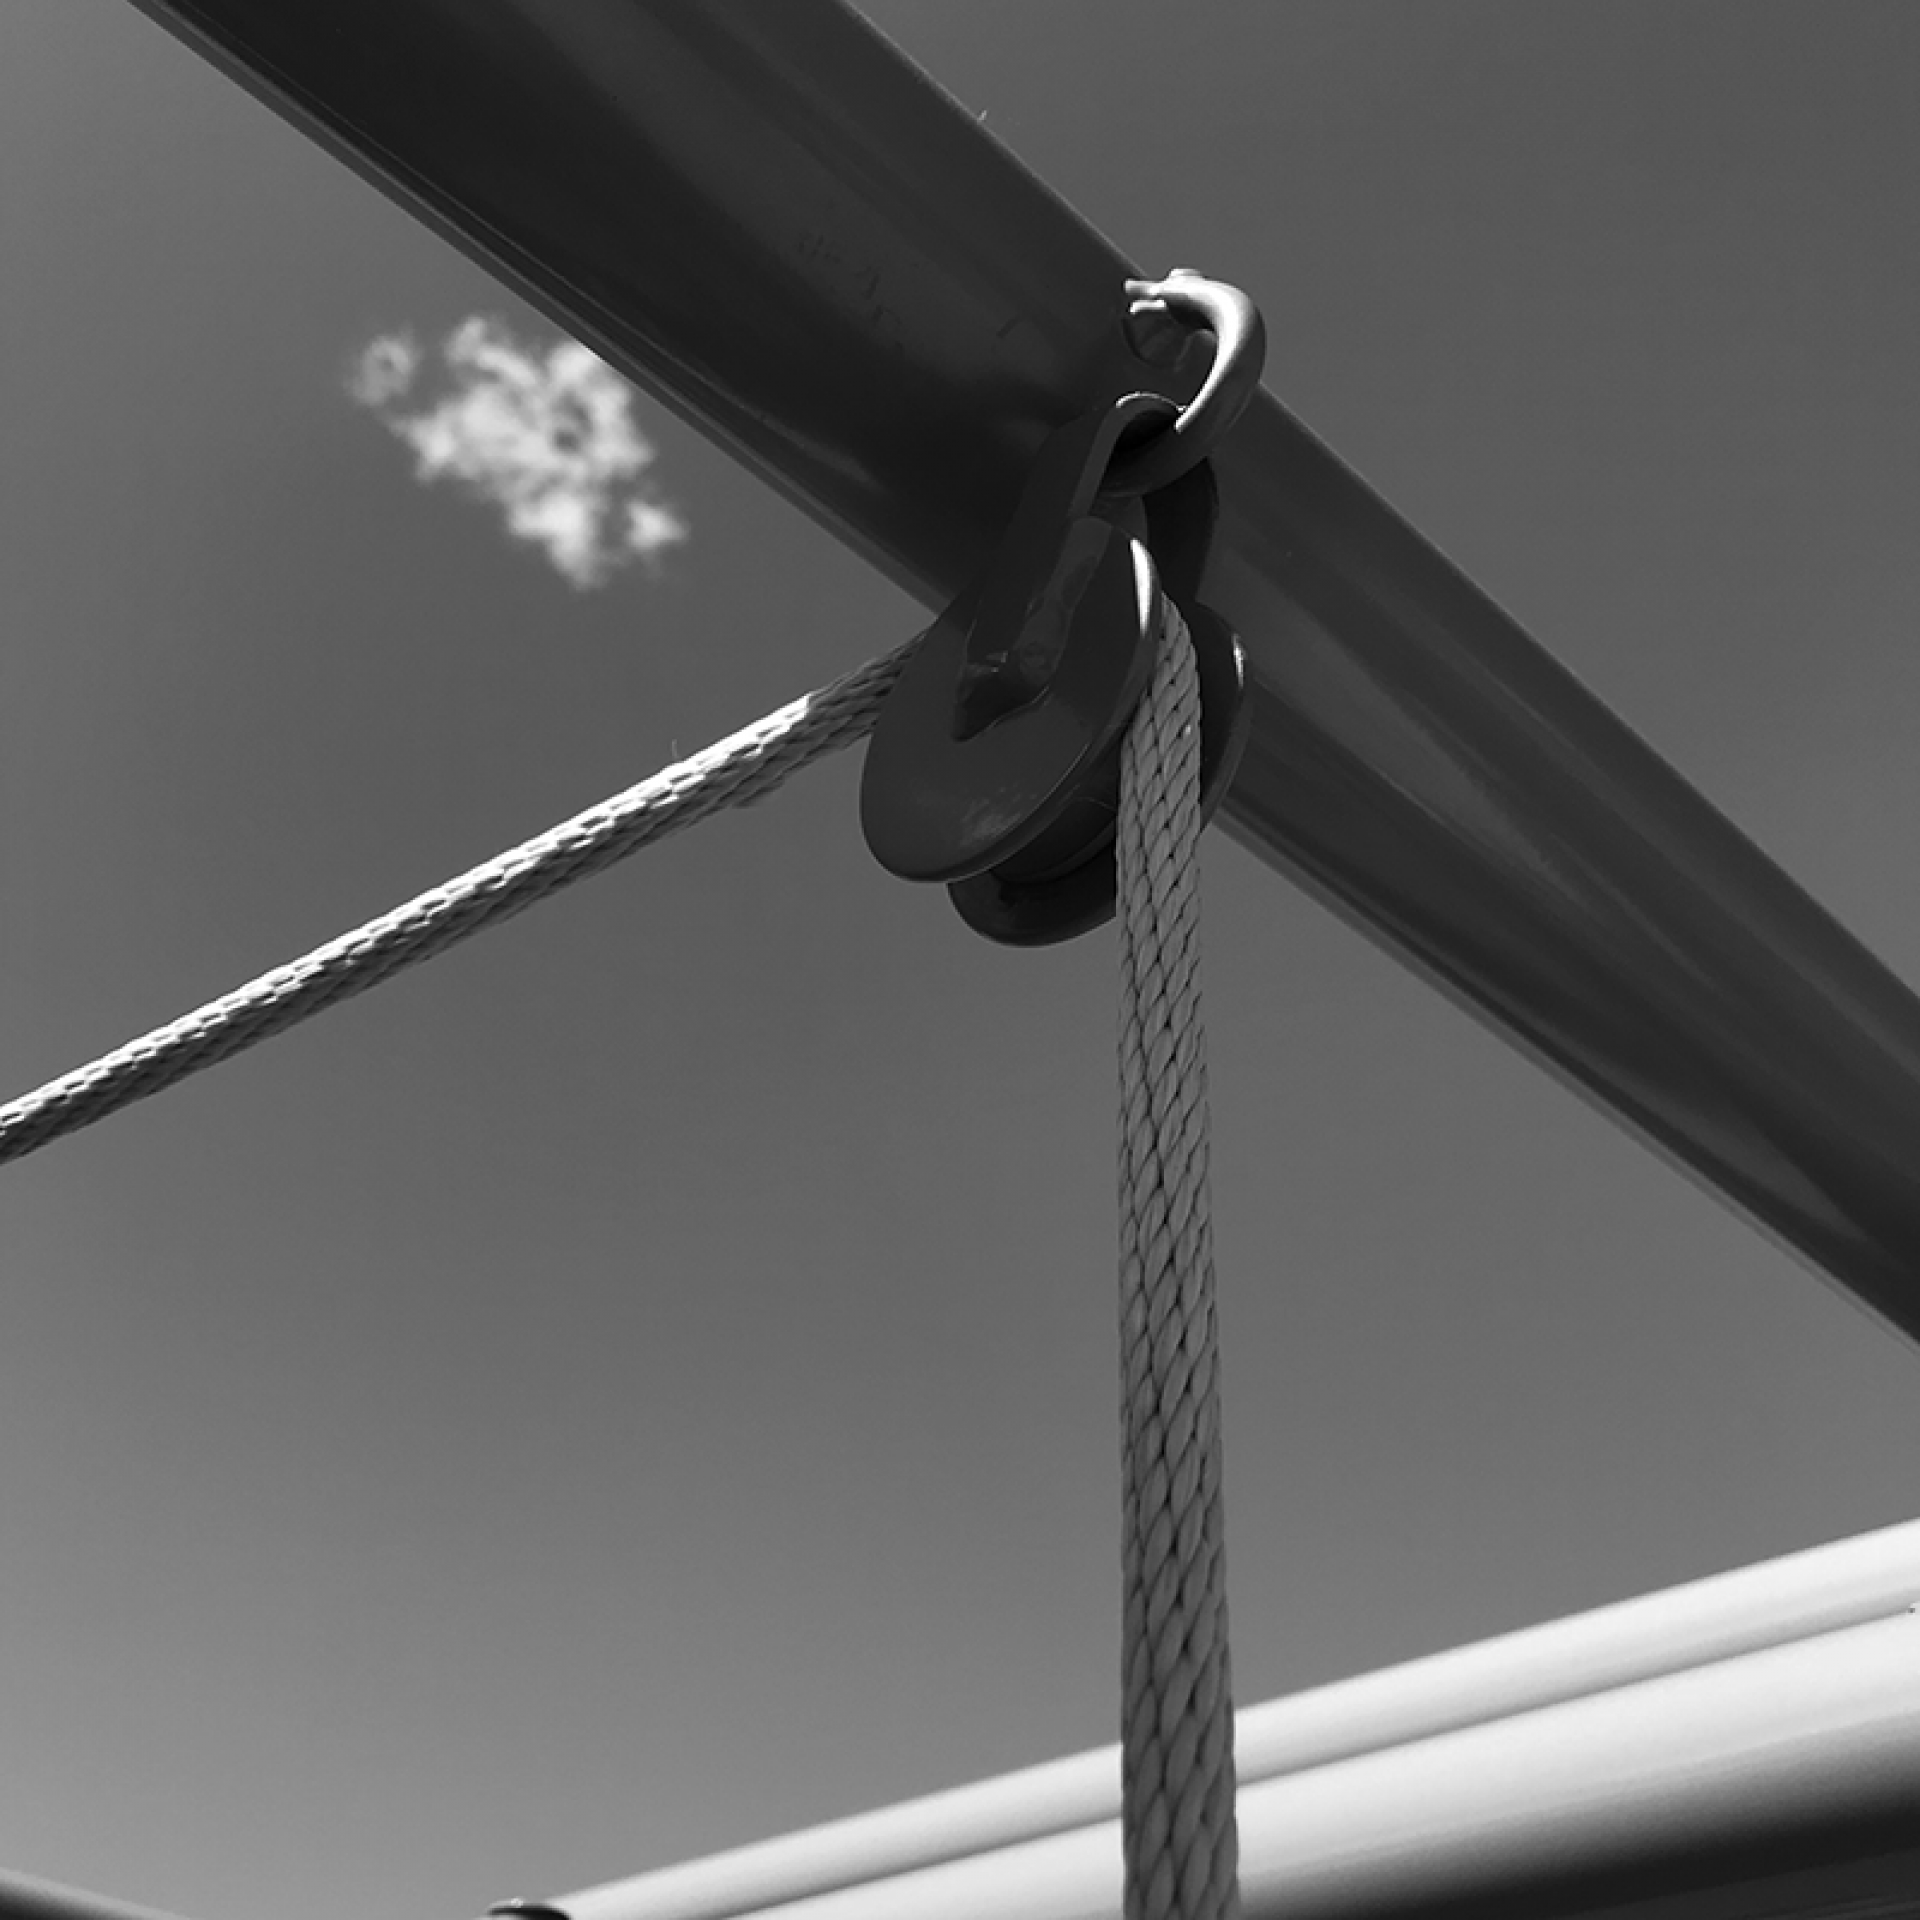 Image of cables on a cattle crush